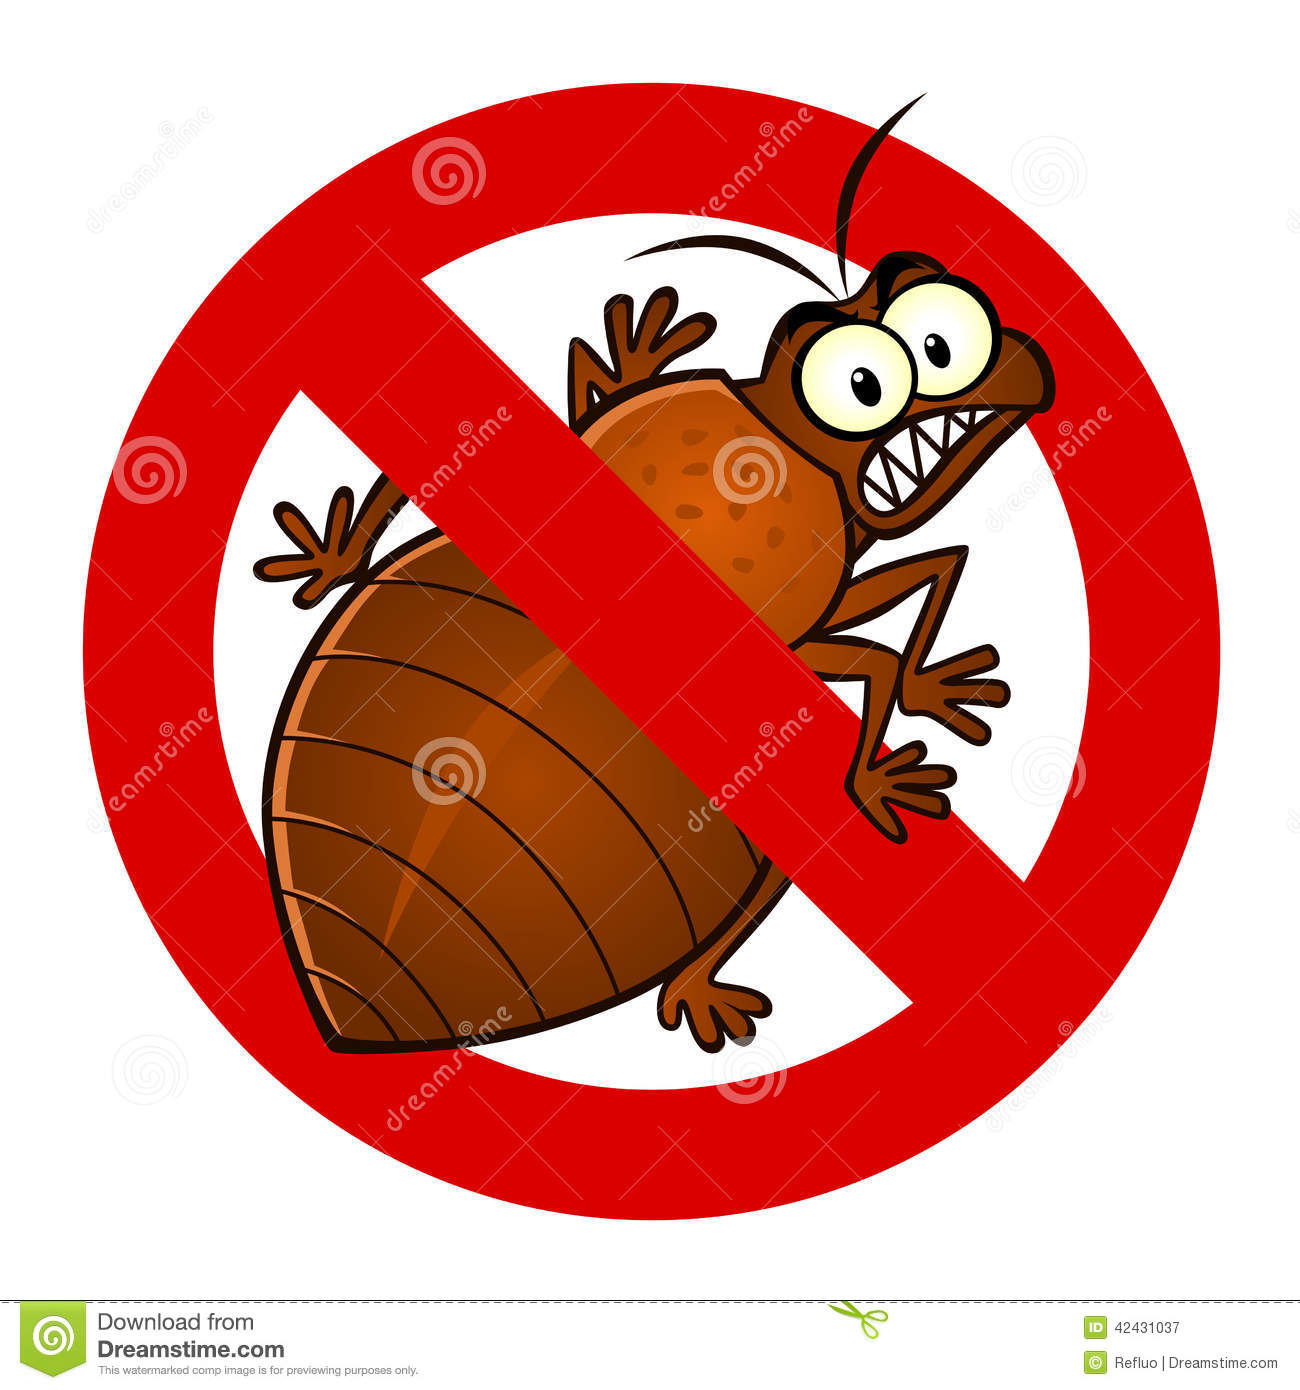 Bed Bugs Stock Photos and Images - 123rf.com